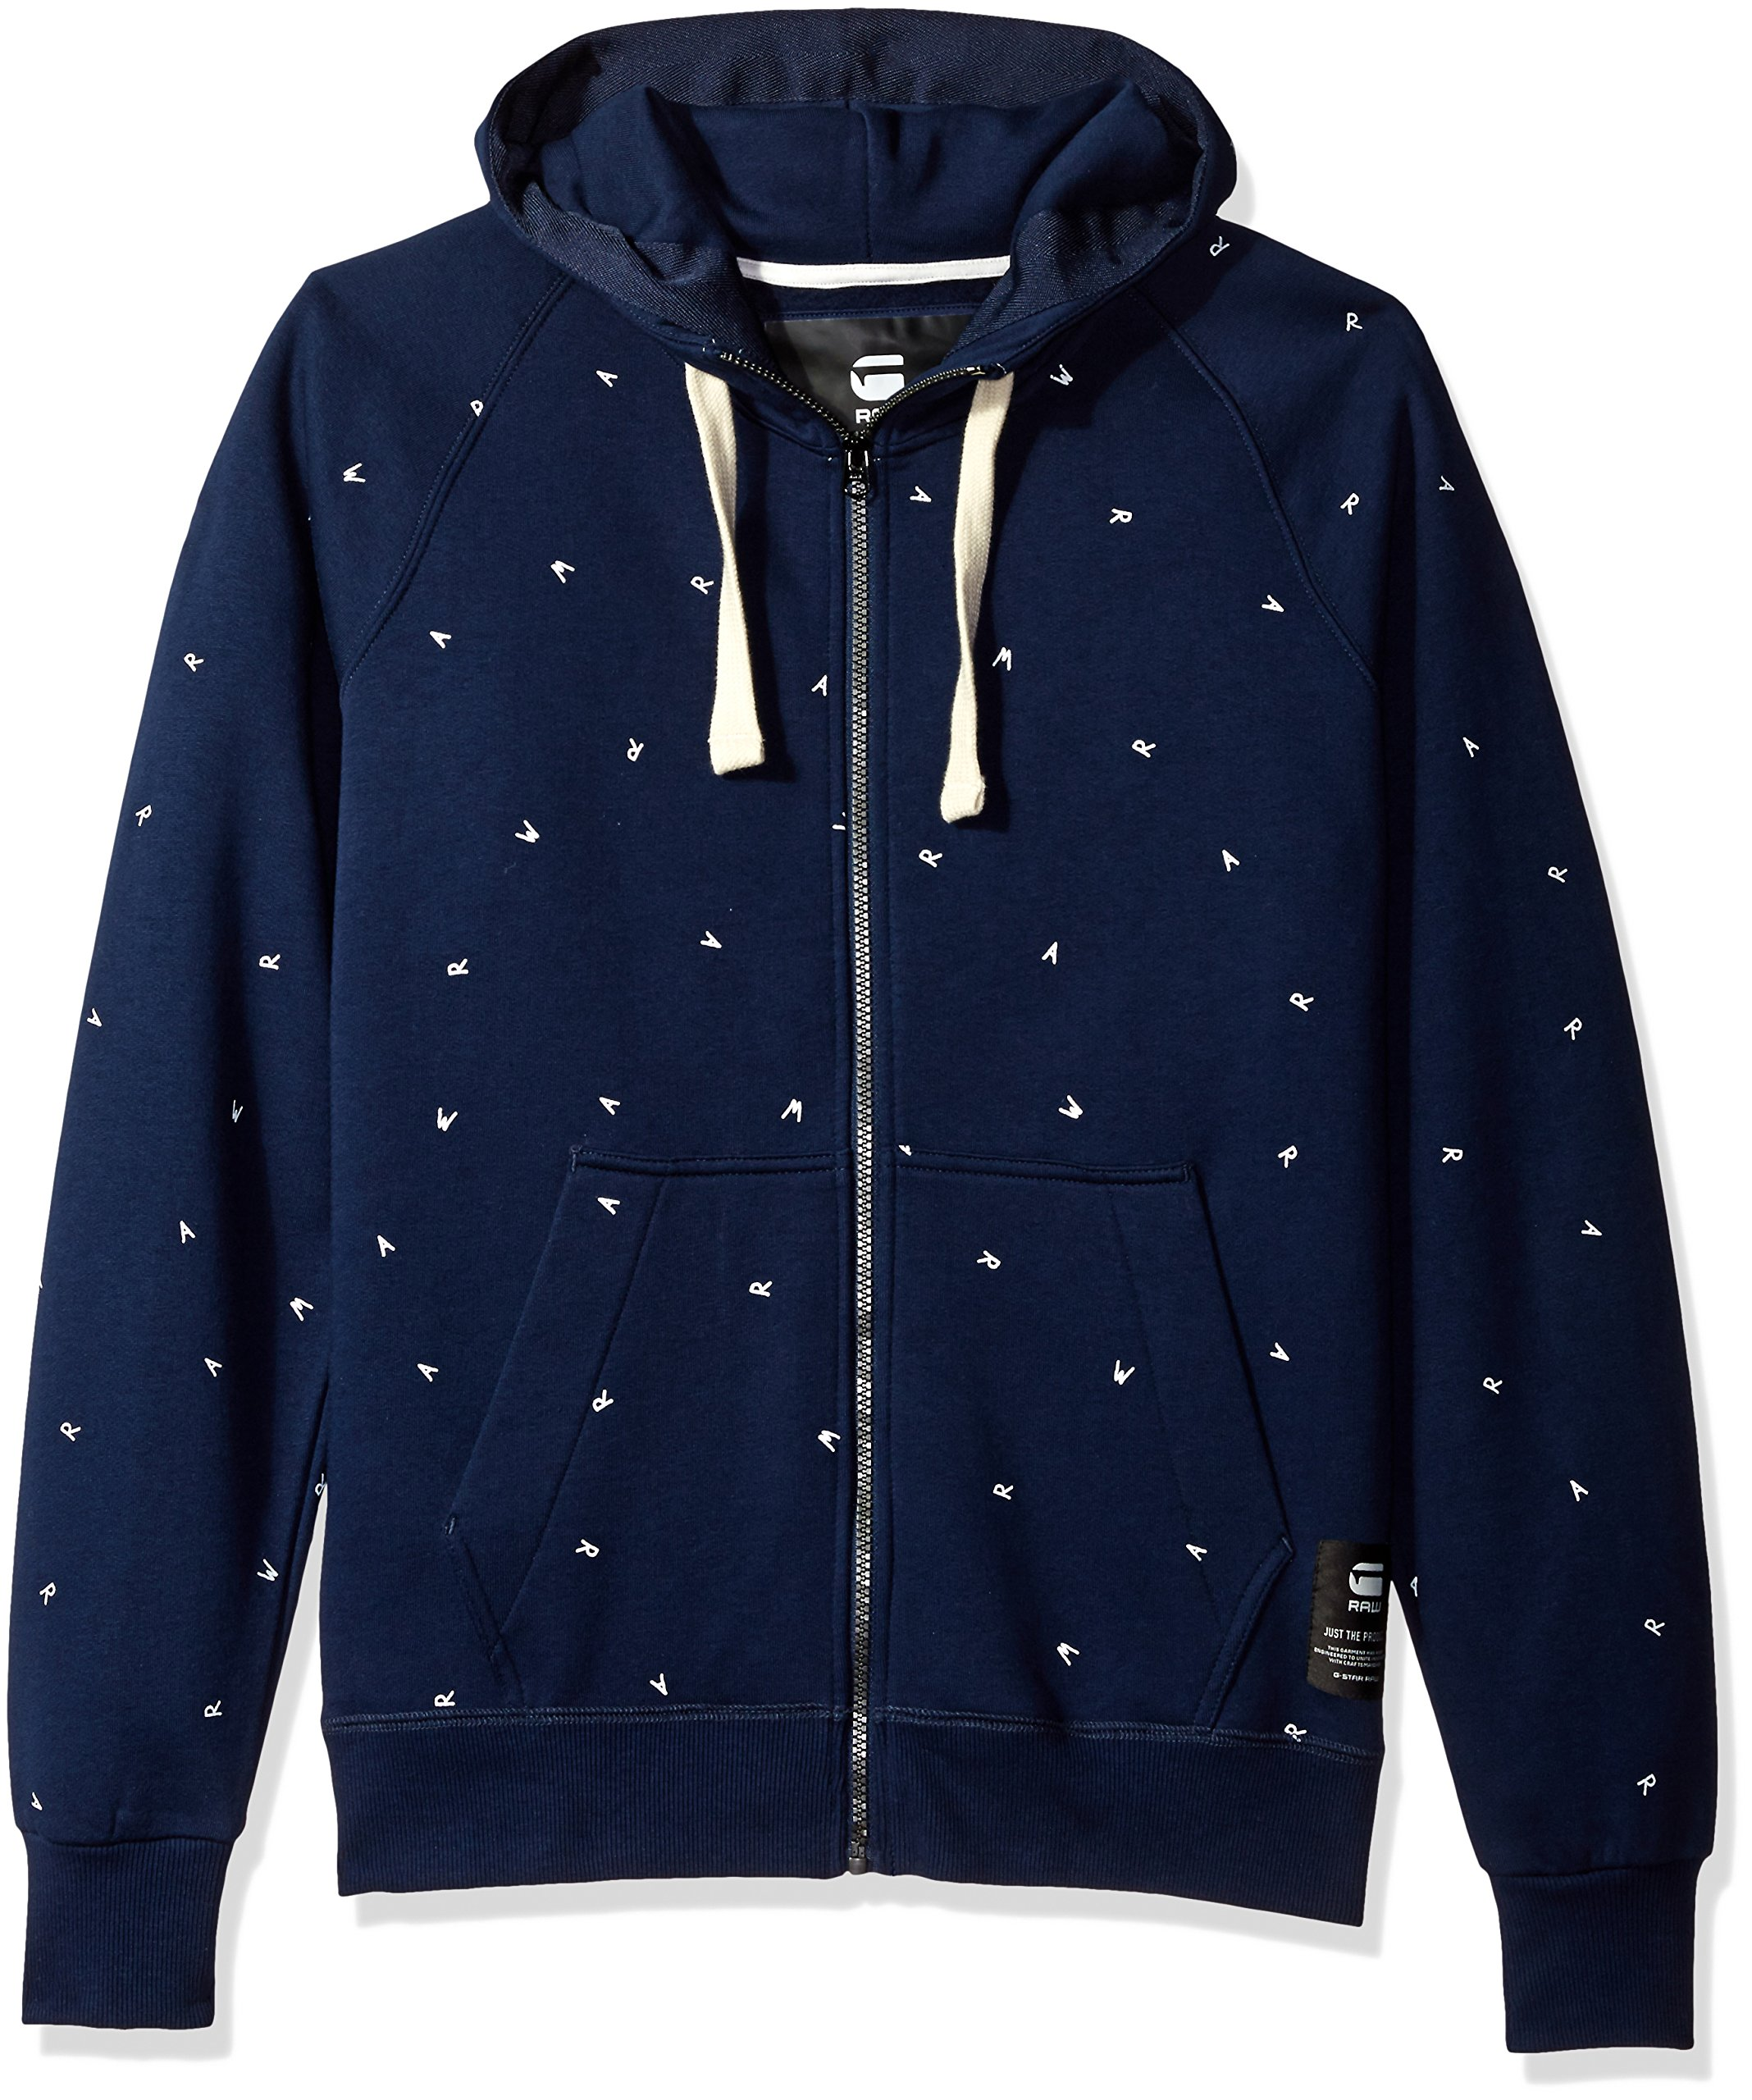 dafe6289bc6 Galleon - G-Star Raw Men's Manes Raglan Zip All Over Scribble Long Sleeve  Hoody, PoliceBlue, Large